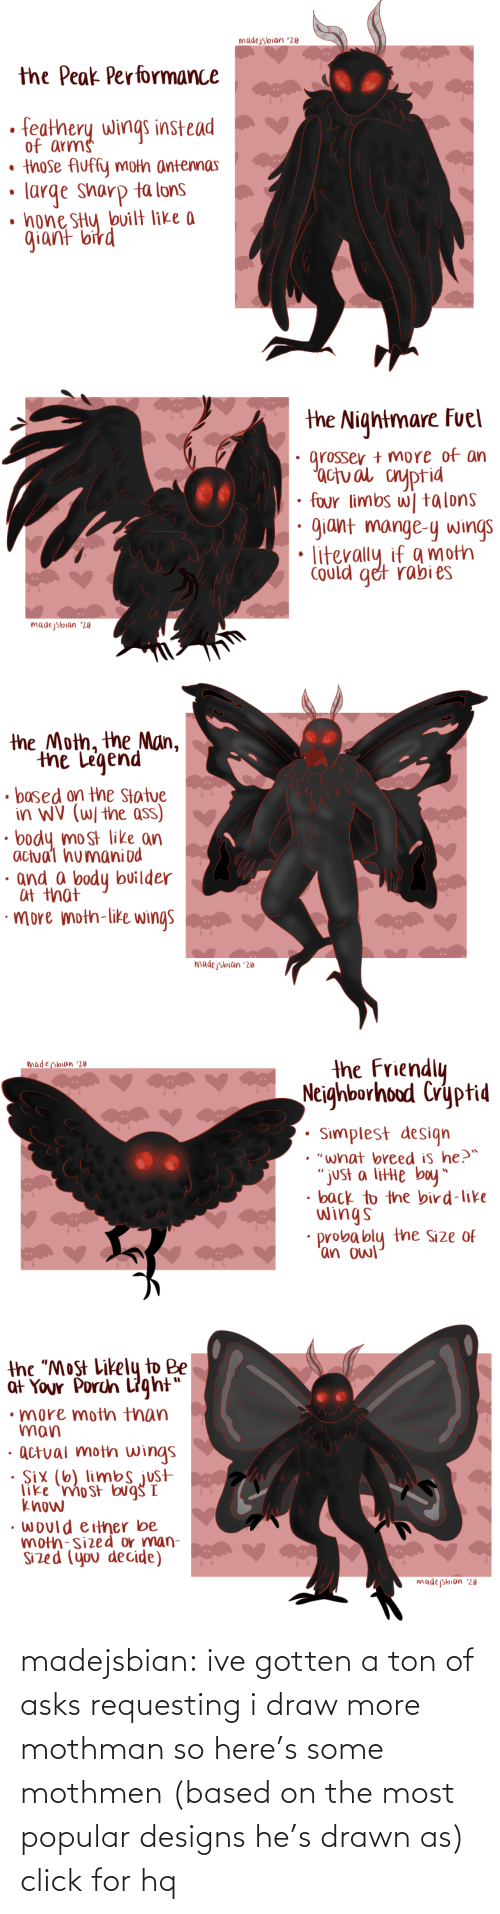 "Ÿ˜˜: madejsbian '20  the Peak Performance  feathery wings instead  of arms  • those Auffy moth antennas  large sharp ta lons  • hone SHy bvilt like a  giant bird   the Nightmare Fuel  grosser + more of an  'actual cnyptid  four limbs w| talons  giant mange-y wings  Could get rabi es  madejsbian '20   the Moth, the Man,  the Legend  • based on the Statue  in WV (W/ the ass)  body most like an  actual humaniod  · and a body builder  at that  ·more moth-like wings  madejsbian '20   the Friendly  Neighborhood Cryptid  madejsbian '20  Simplest design  • ""what breed is he?™  ""just a litte boy""  • back to the bird-like  wings  probably the Size of  'an owl   the ""Most Likely to Be  at Your Porch Light""  •more moth than  man  · actual moth wings  · Six (6) limbs just  like 'mo st bug I  know  • would either be  moth-sized or man-  Sized (you decide)  madejsbian '20 madejsbian: ive gotten a ton of asks requesting i draw more mothman so here's some mothmen (based on the most popular designs he's drawn as)